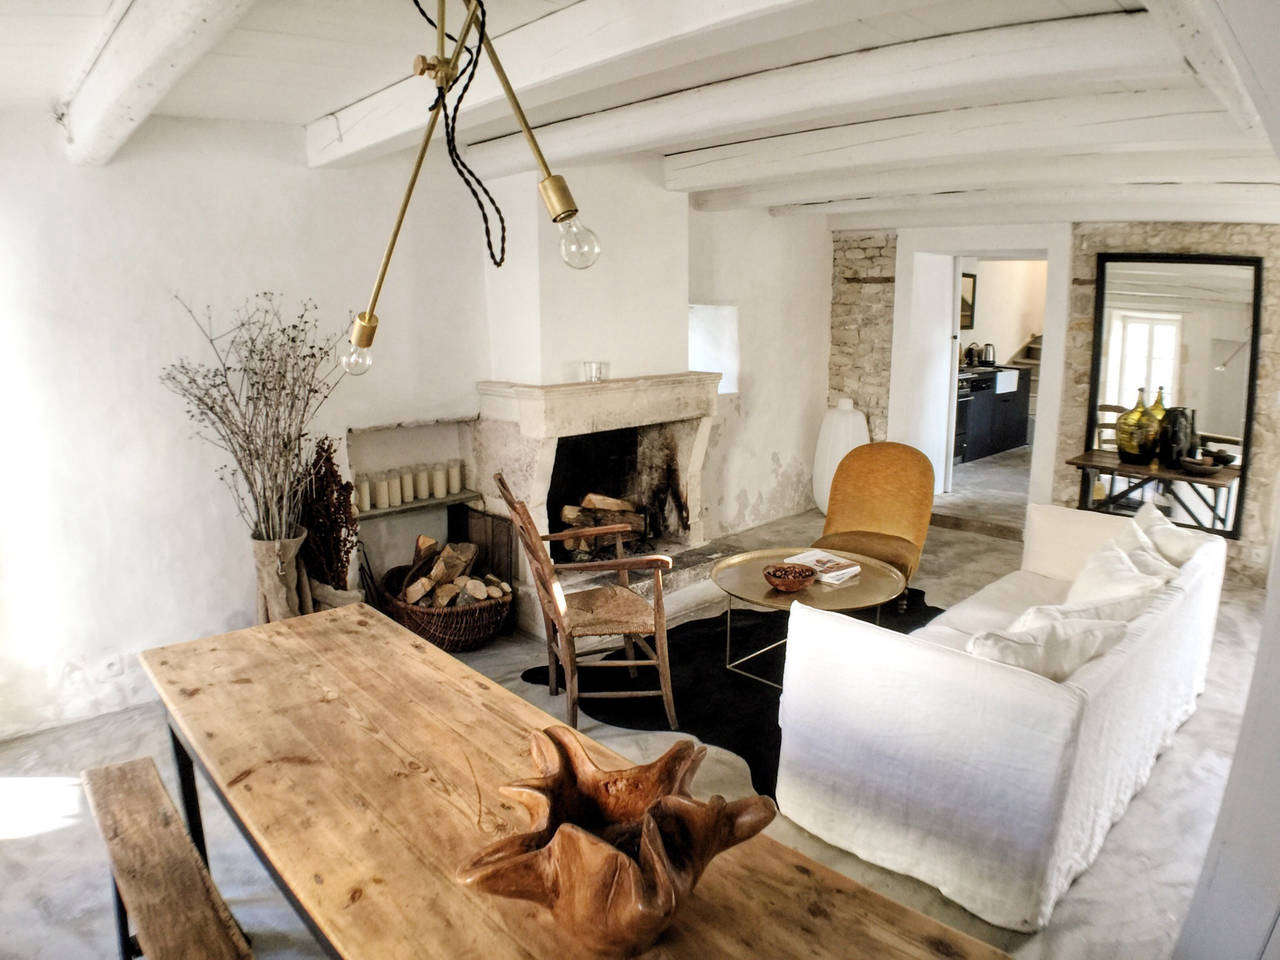 Living room furniture at la maison du figuier is centered around the old fireplace while extra